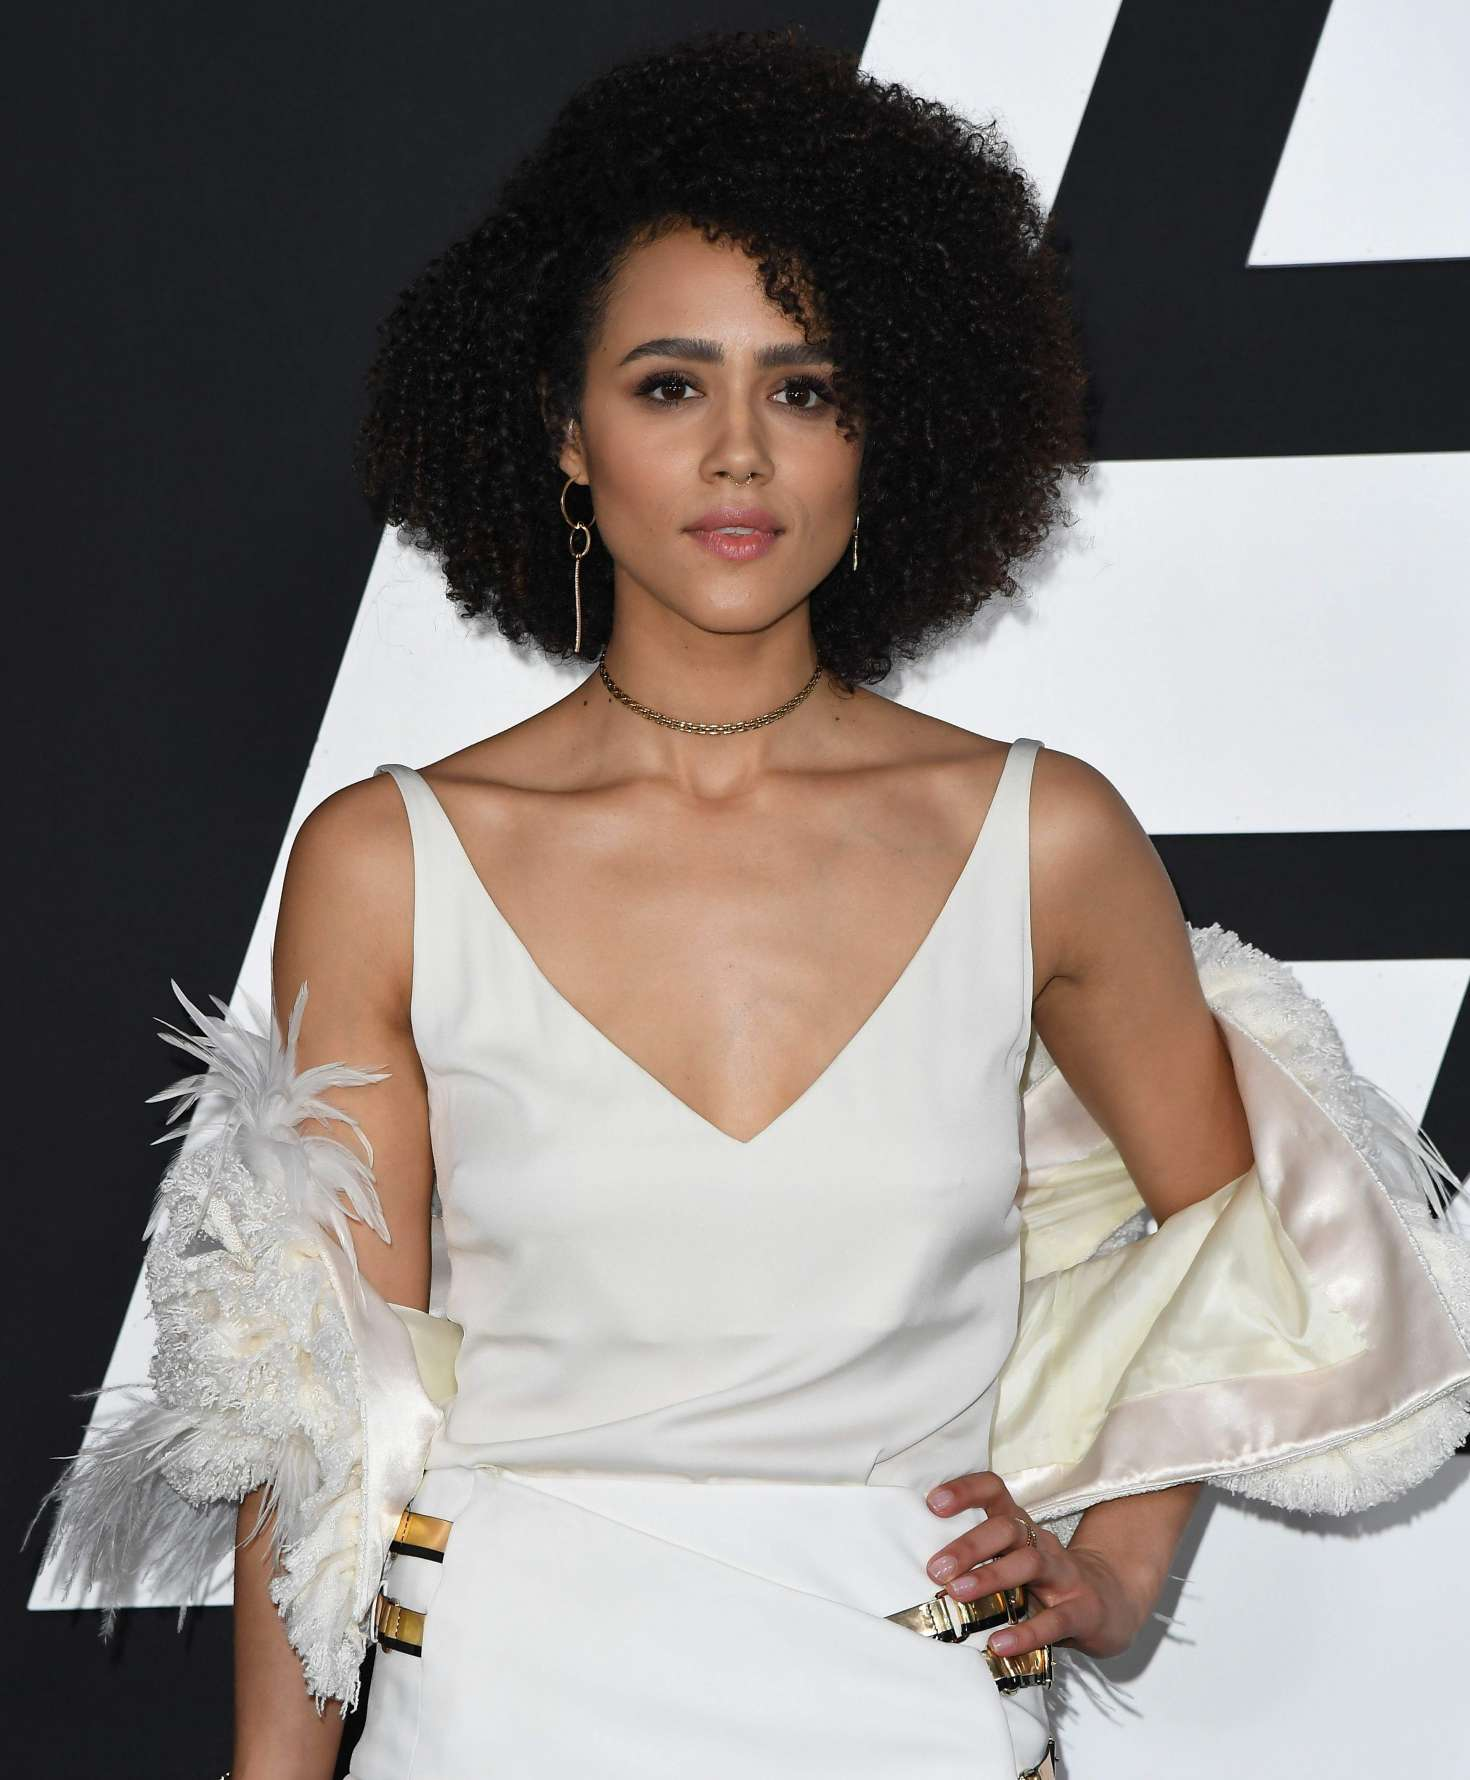 Nathalie Emmanuel - 'The Fate of the Furious' Premiere in New York